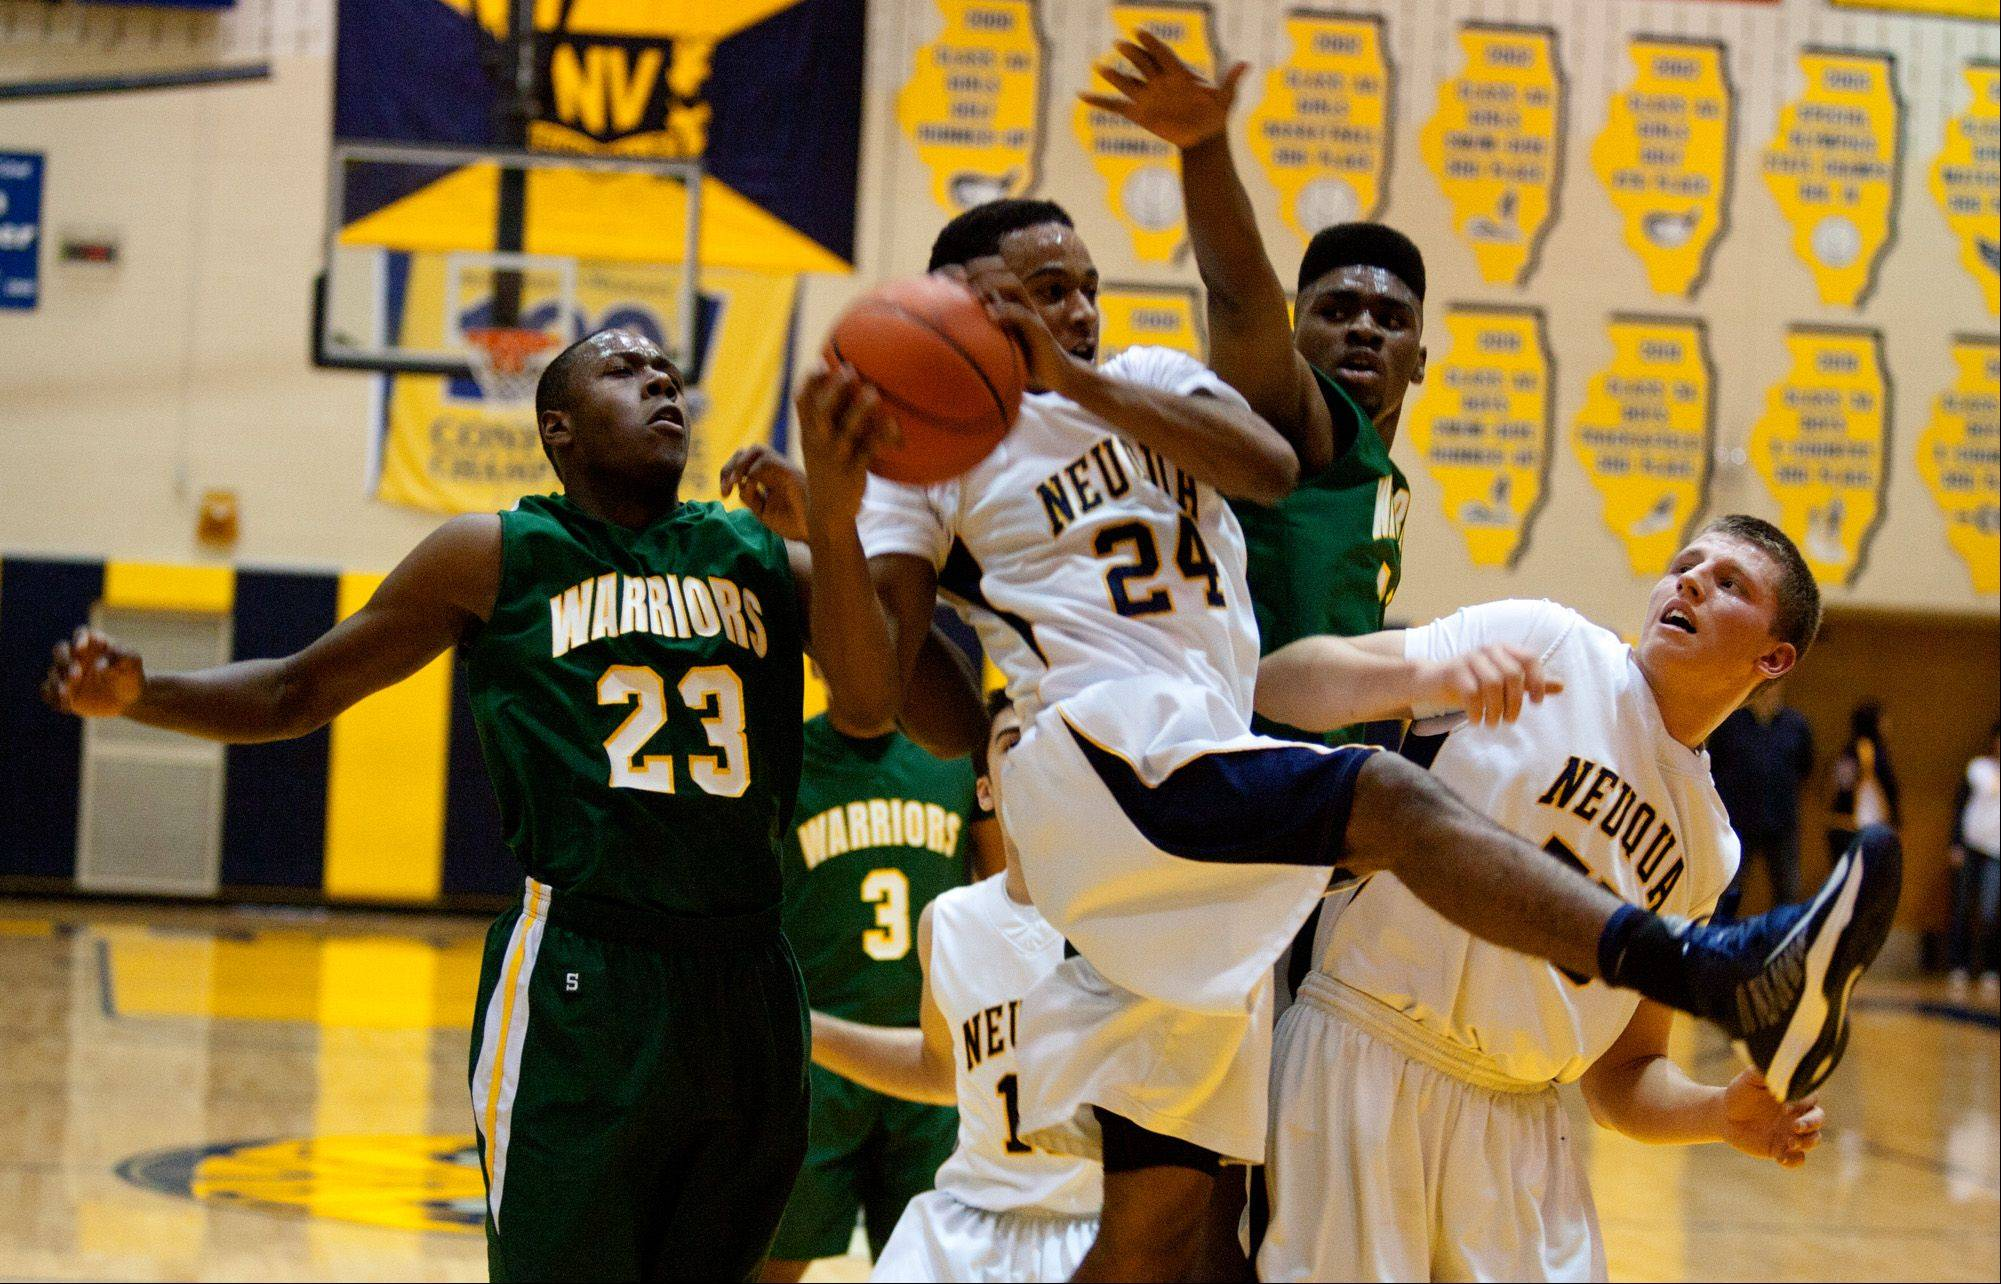 Neuqua Valley's Jabari Sandifer (24), gathers a rebound against Waubonsie Valley during boy's basketball action in Naperville.